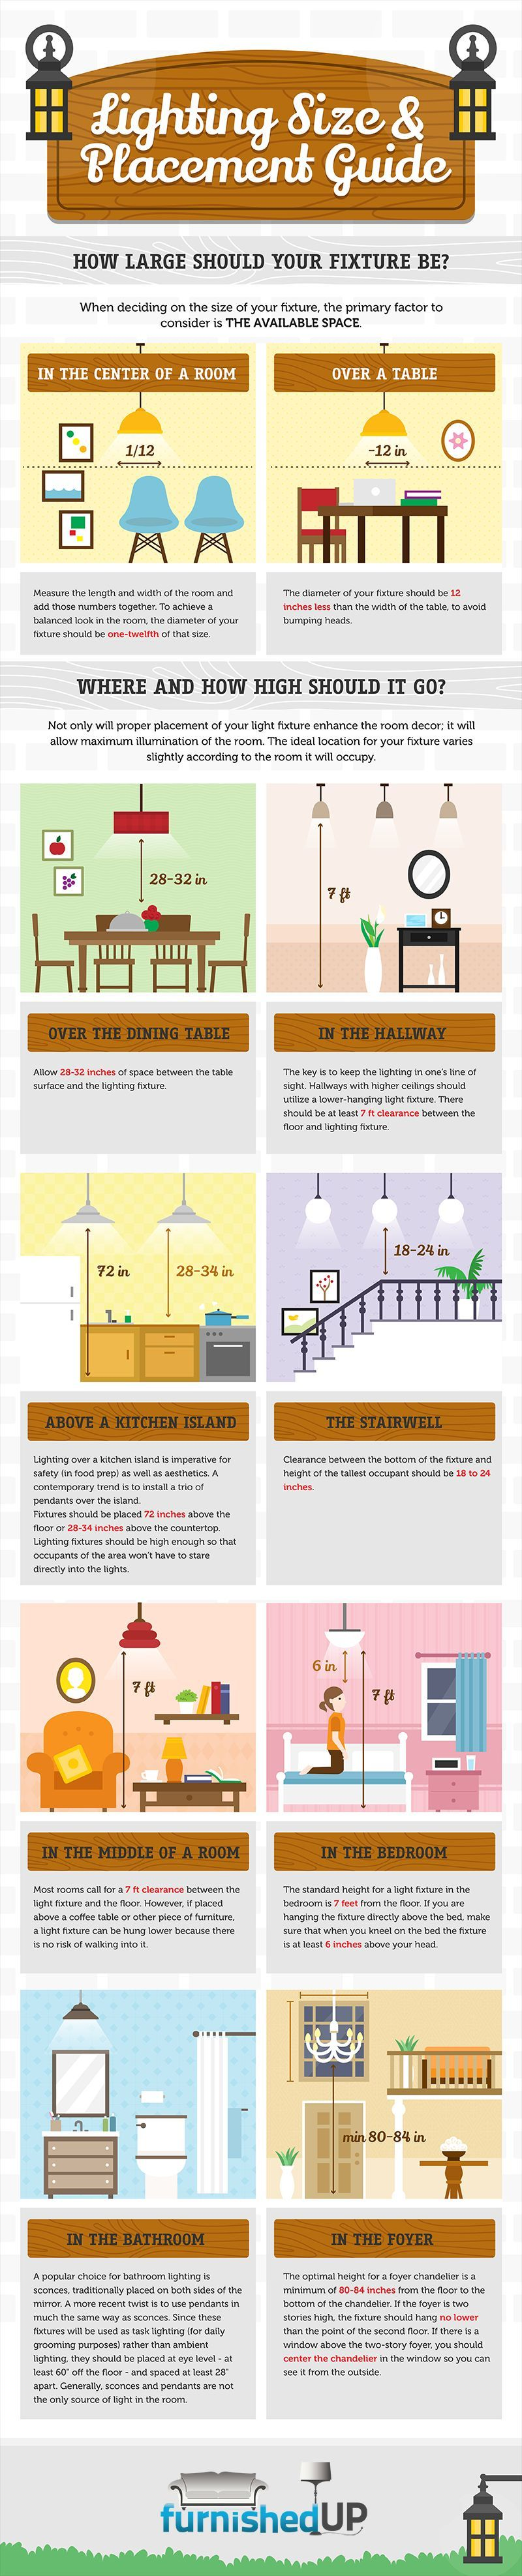 How to hang lighting, a practical guide to measurements. Very good ...